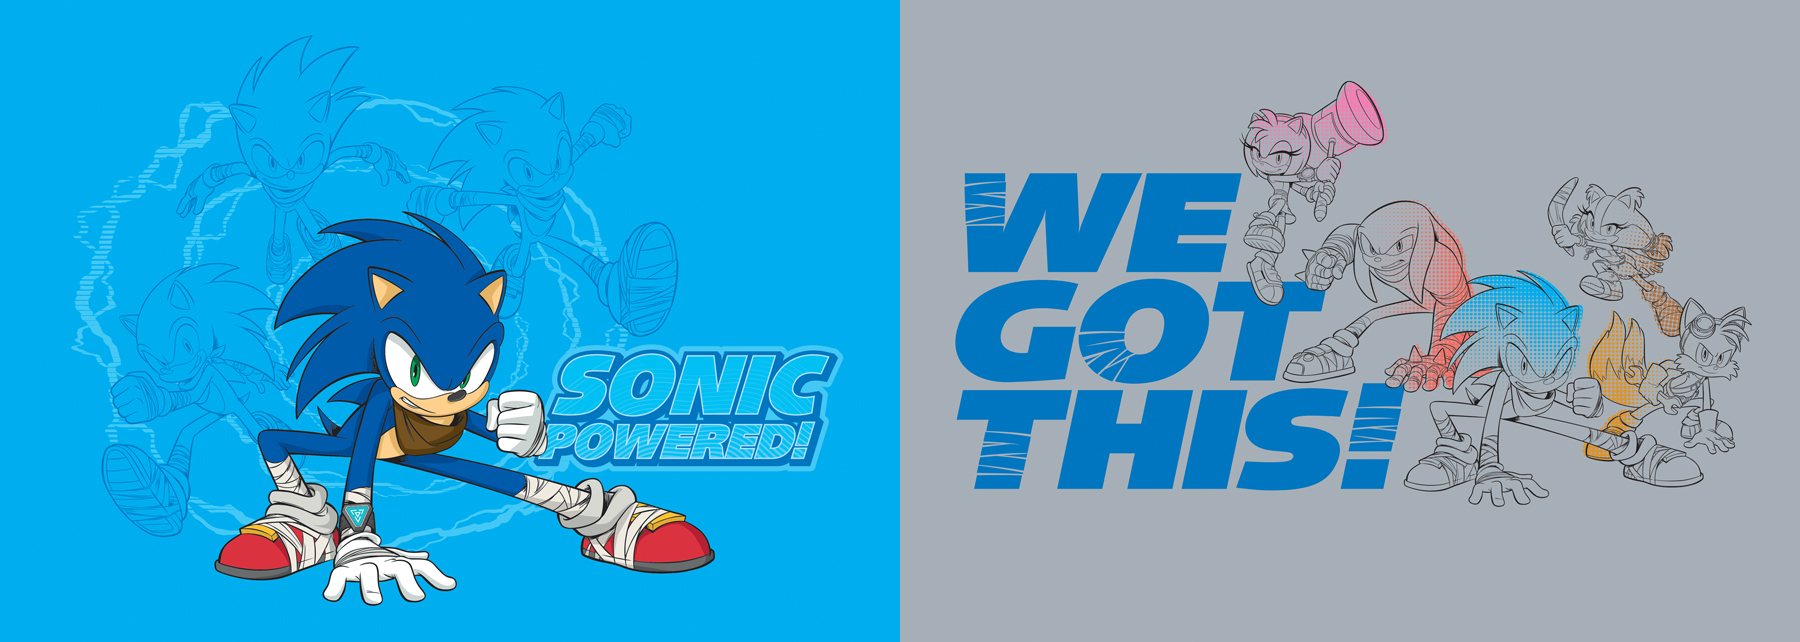 Sonic Boom Vector Style Guide Design - Feature 2